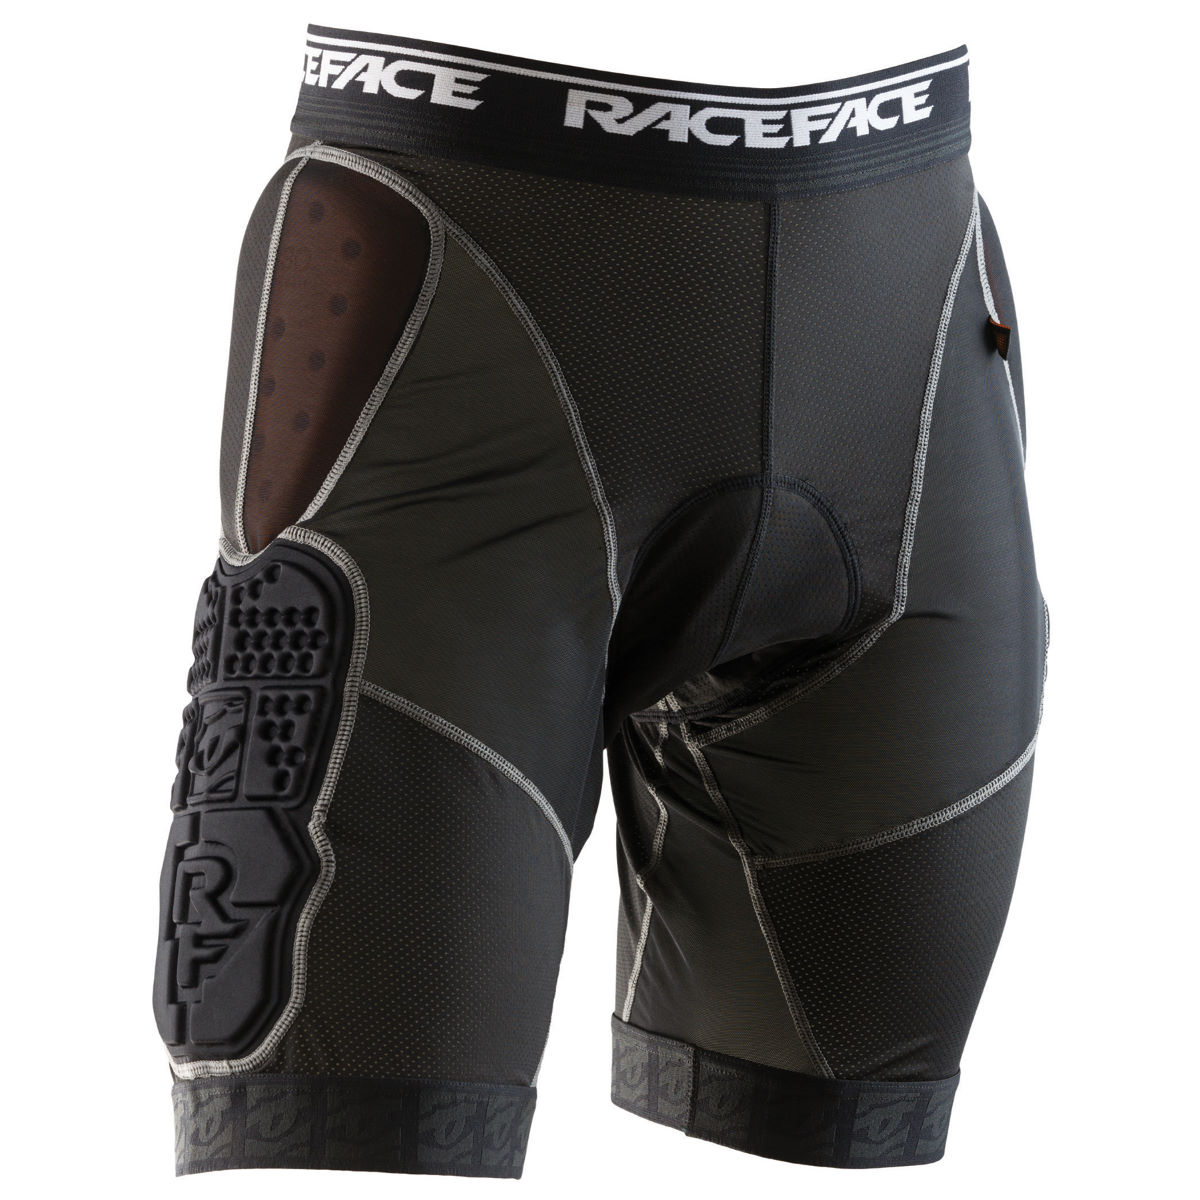 Race Face Flank Liner D30  Pad   Protective Shorts